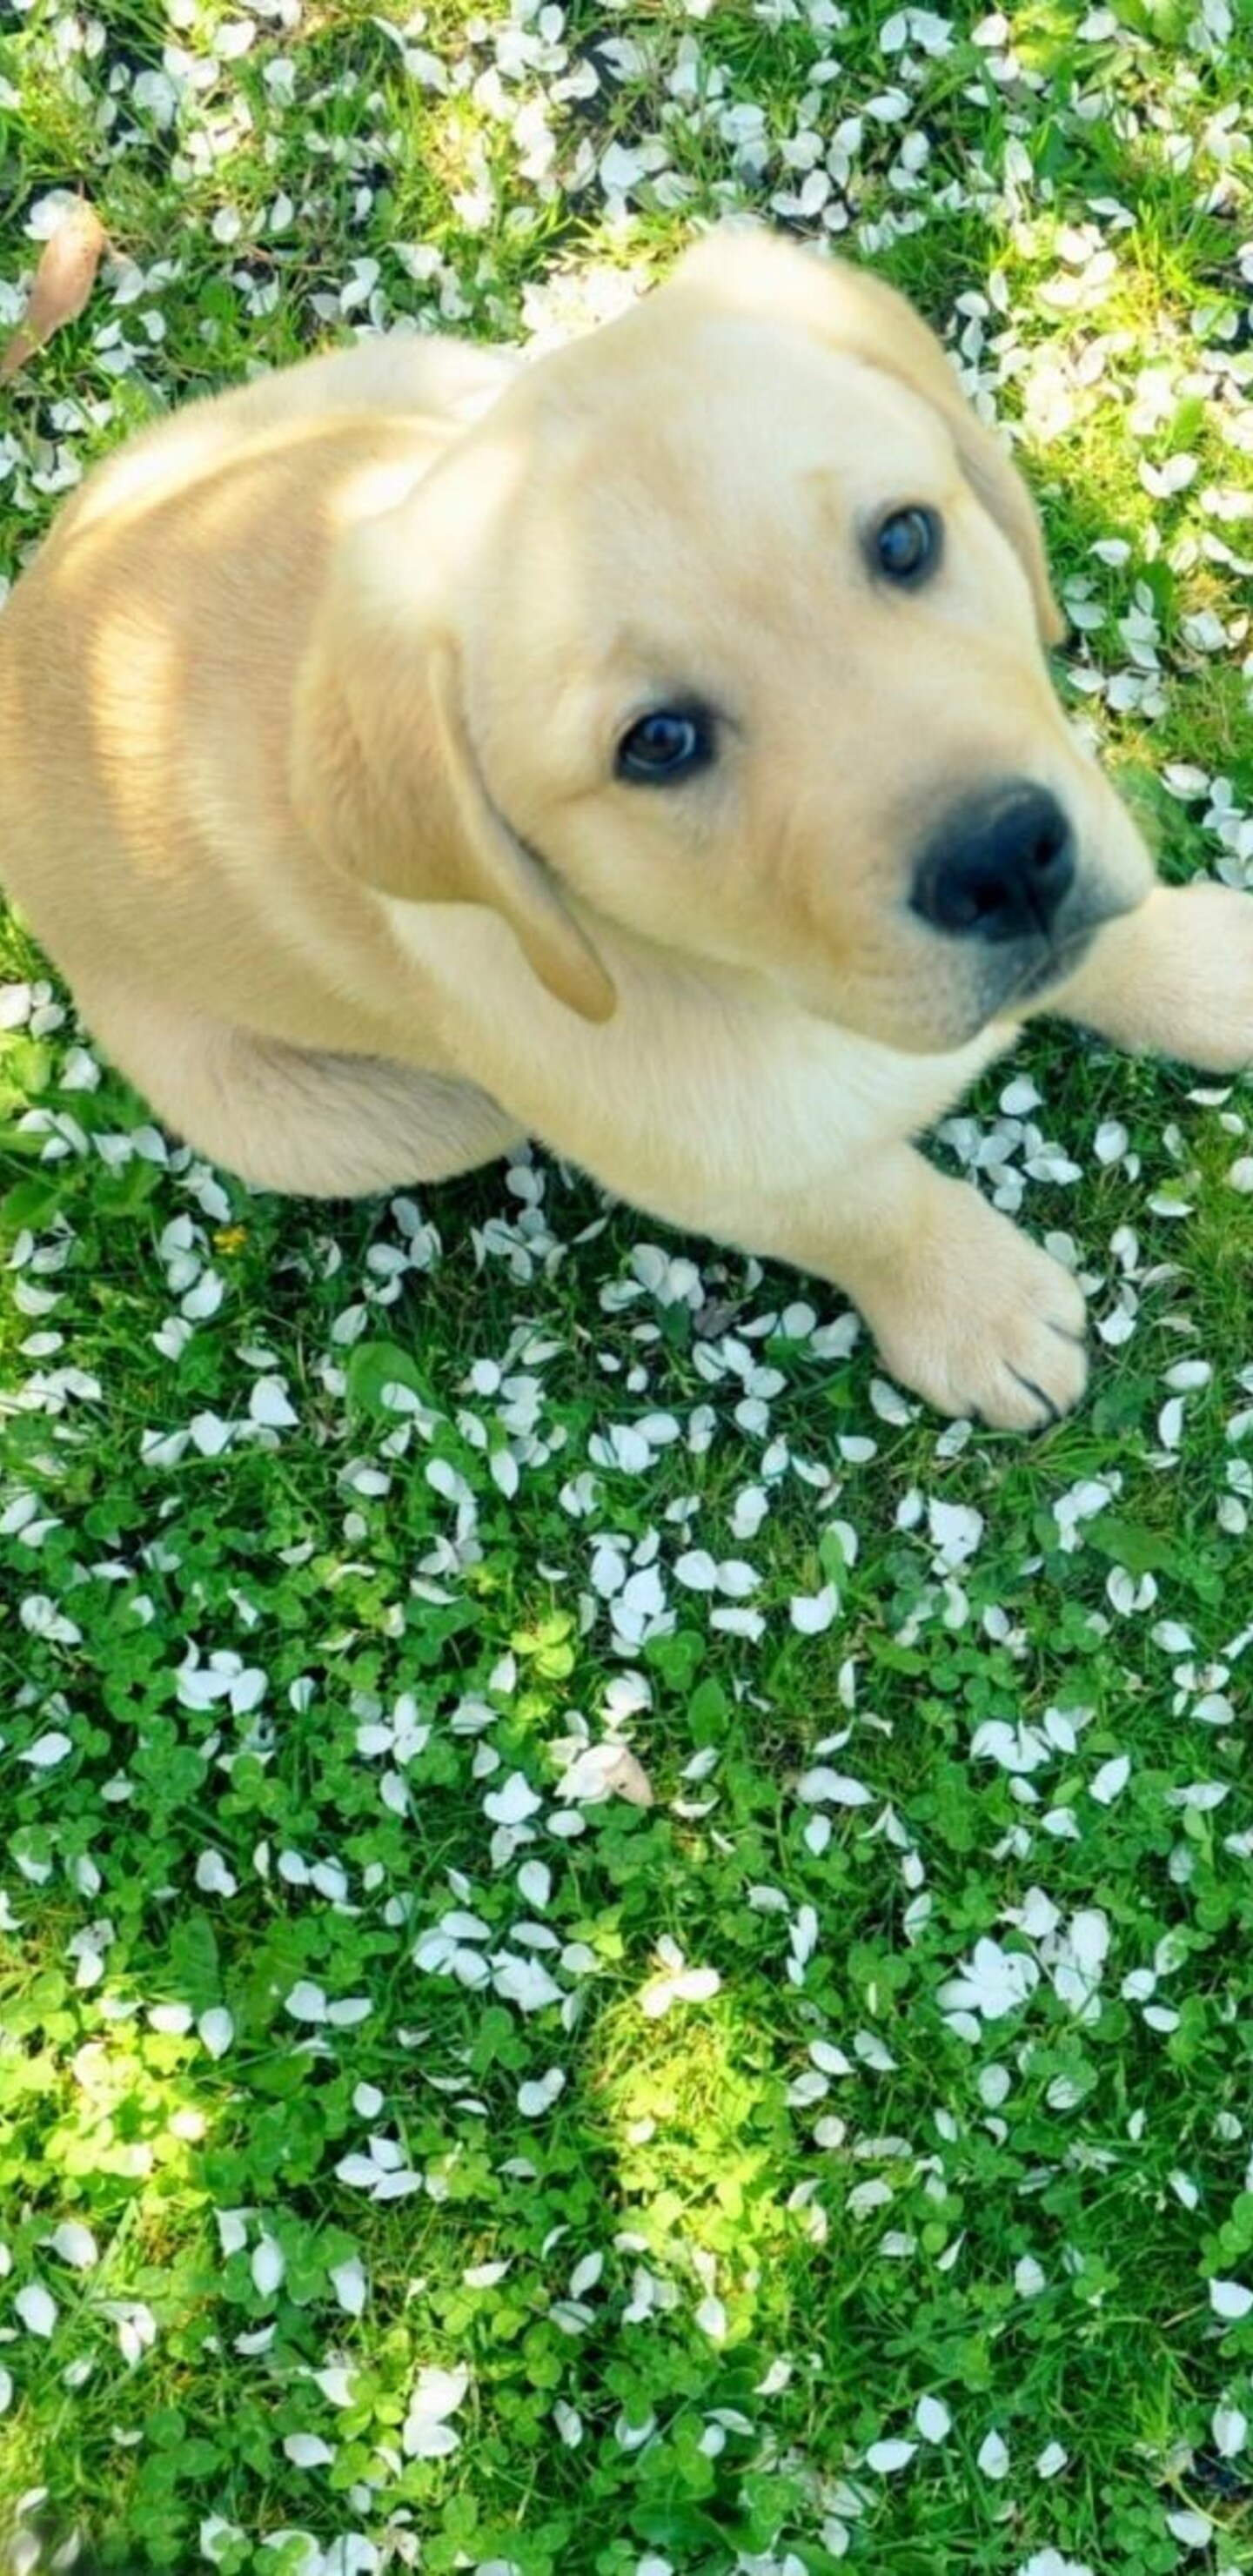 1440x2960 Labrador Puppy Samsung Galaxy Note 9 8 S9 S8 S8 Qhd Hd 4k Wallpapers Images Backgrounds Photos And Pictures